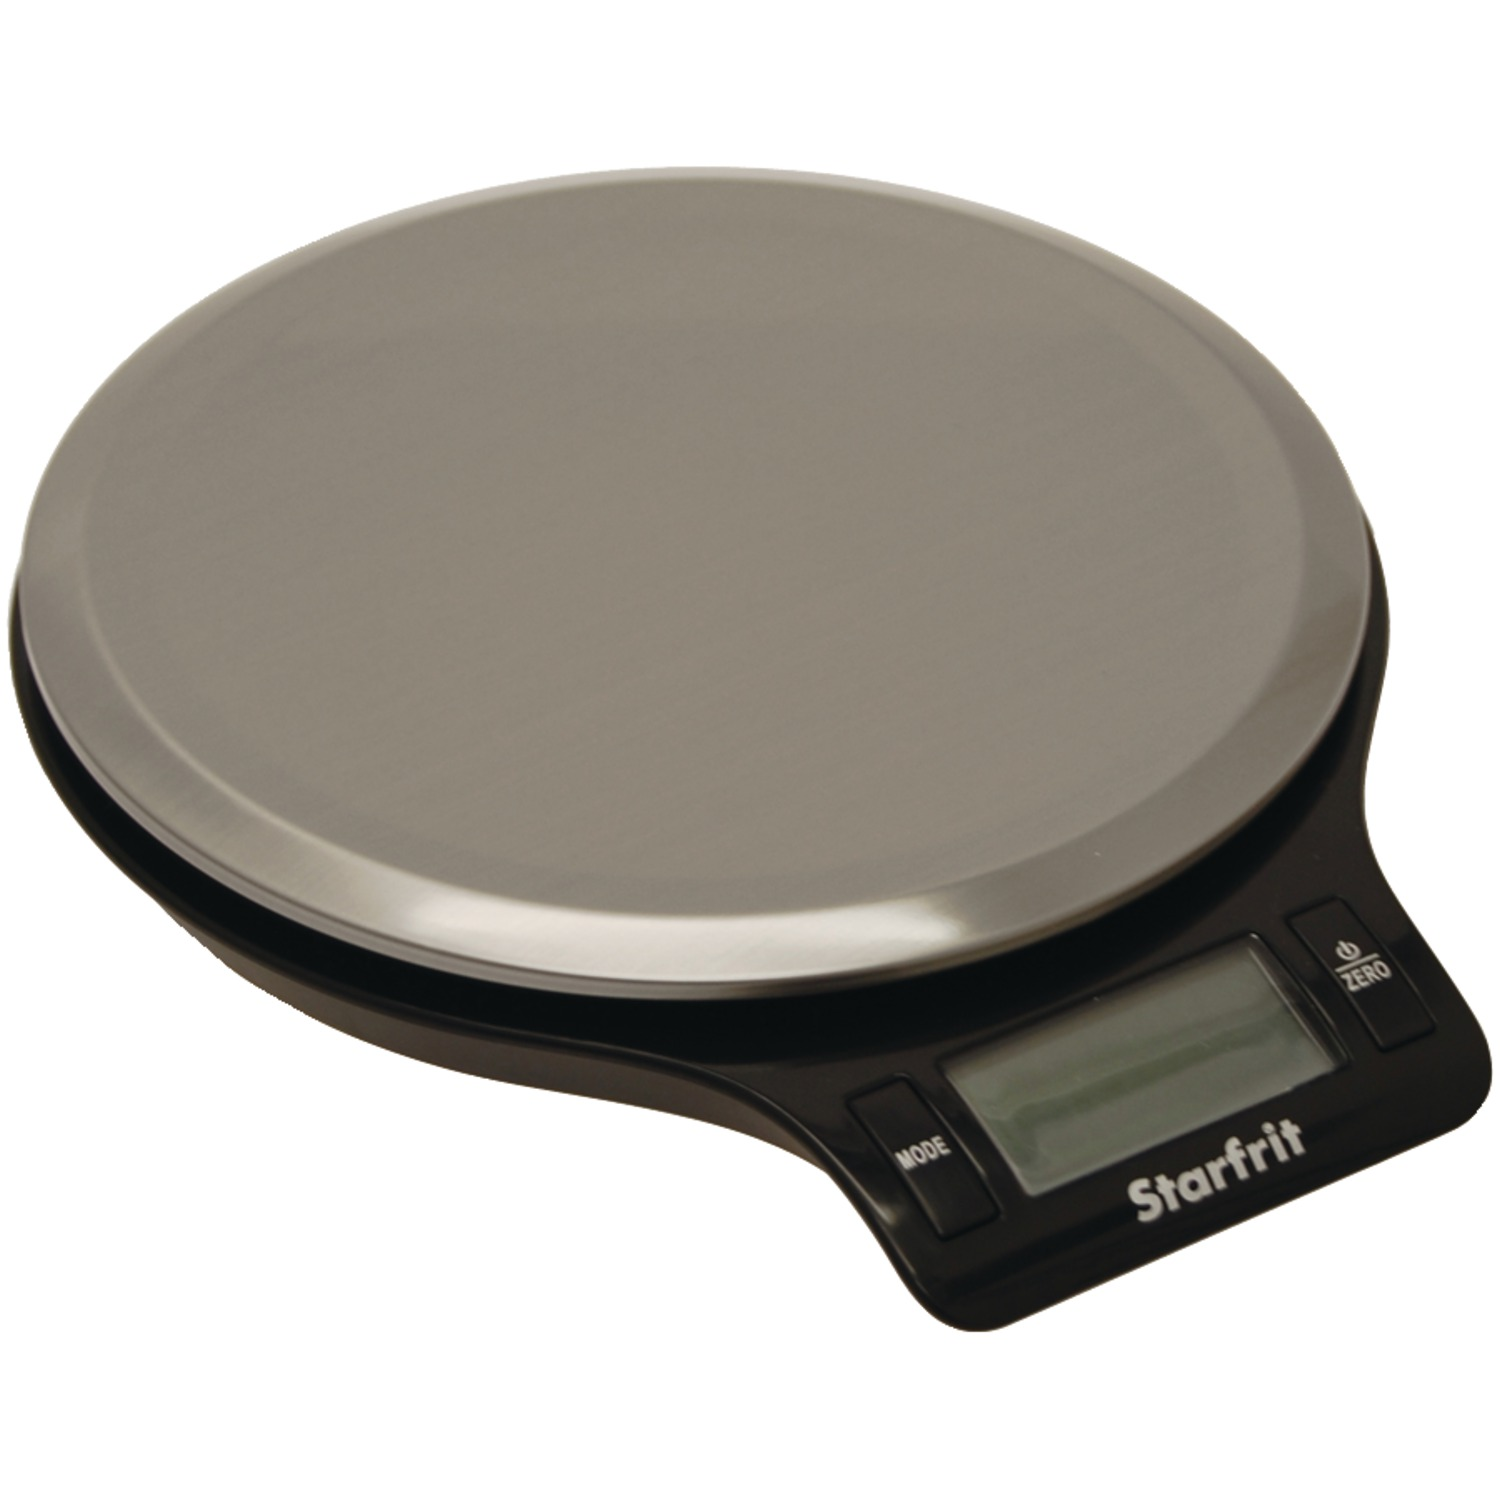 starfrit electronic kitchen scale manual